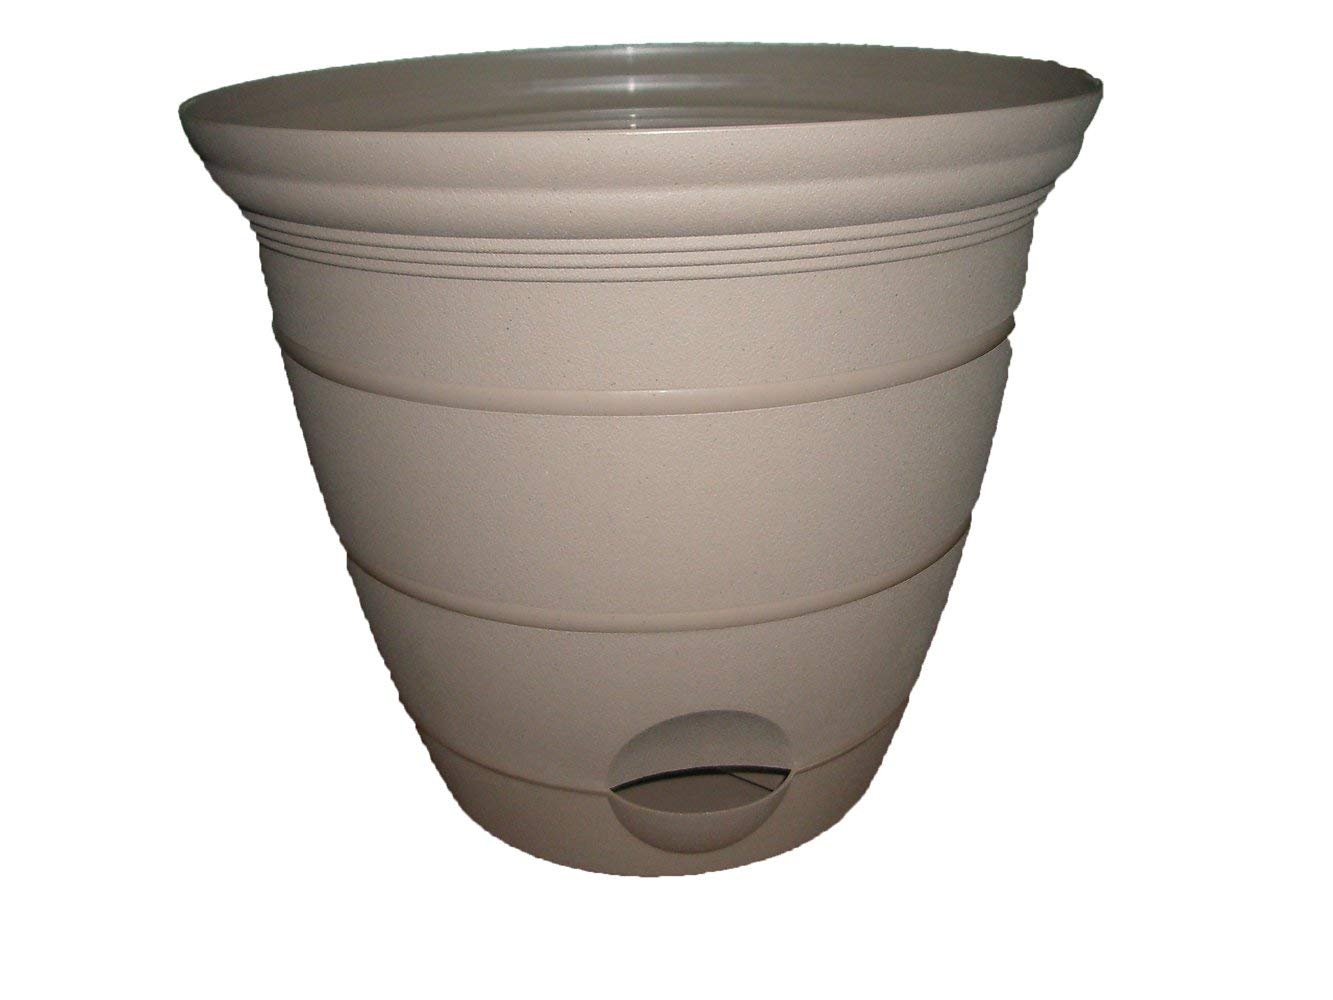 Misco Terra Collection Round Tapered Flared Self-Watering Planter with Ventilated Base, 12-Inch Diameter, Sandalwood